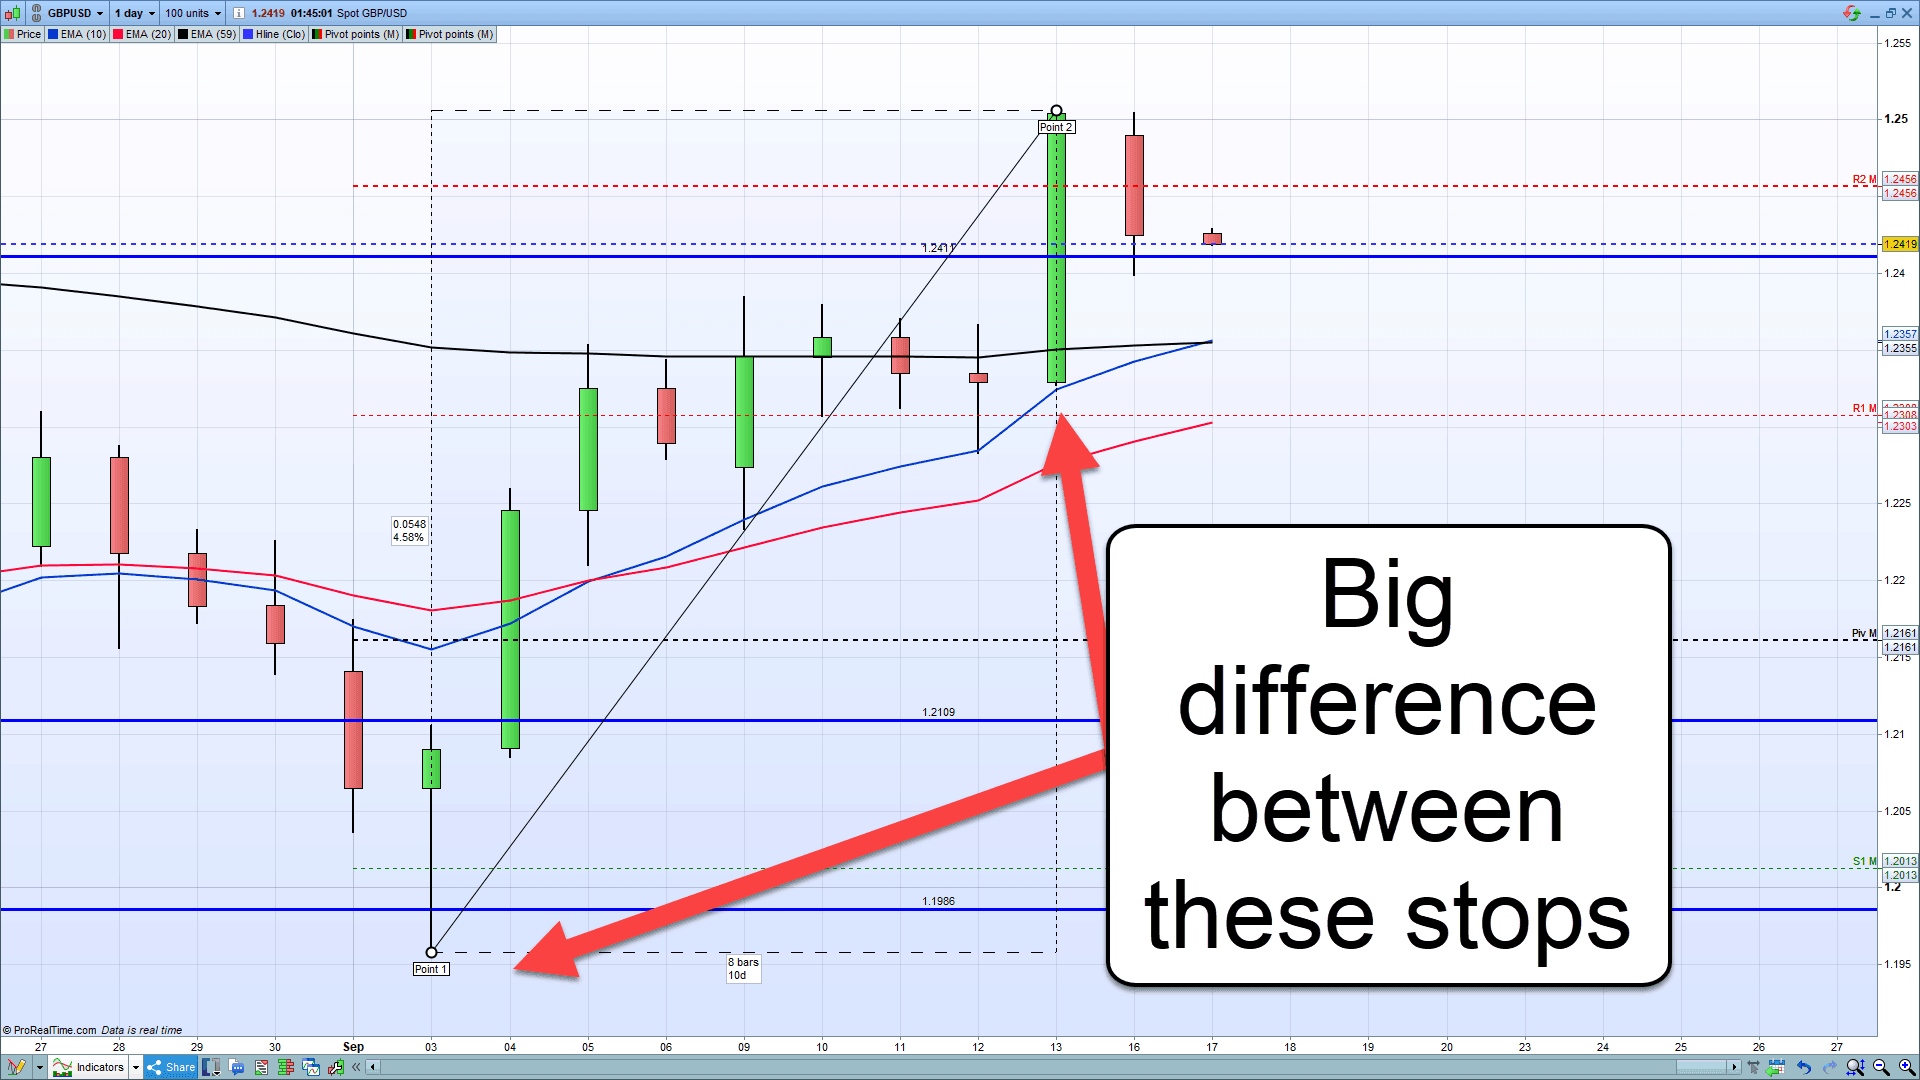 A chart showing the differences between different stop loss locations on leverage.